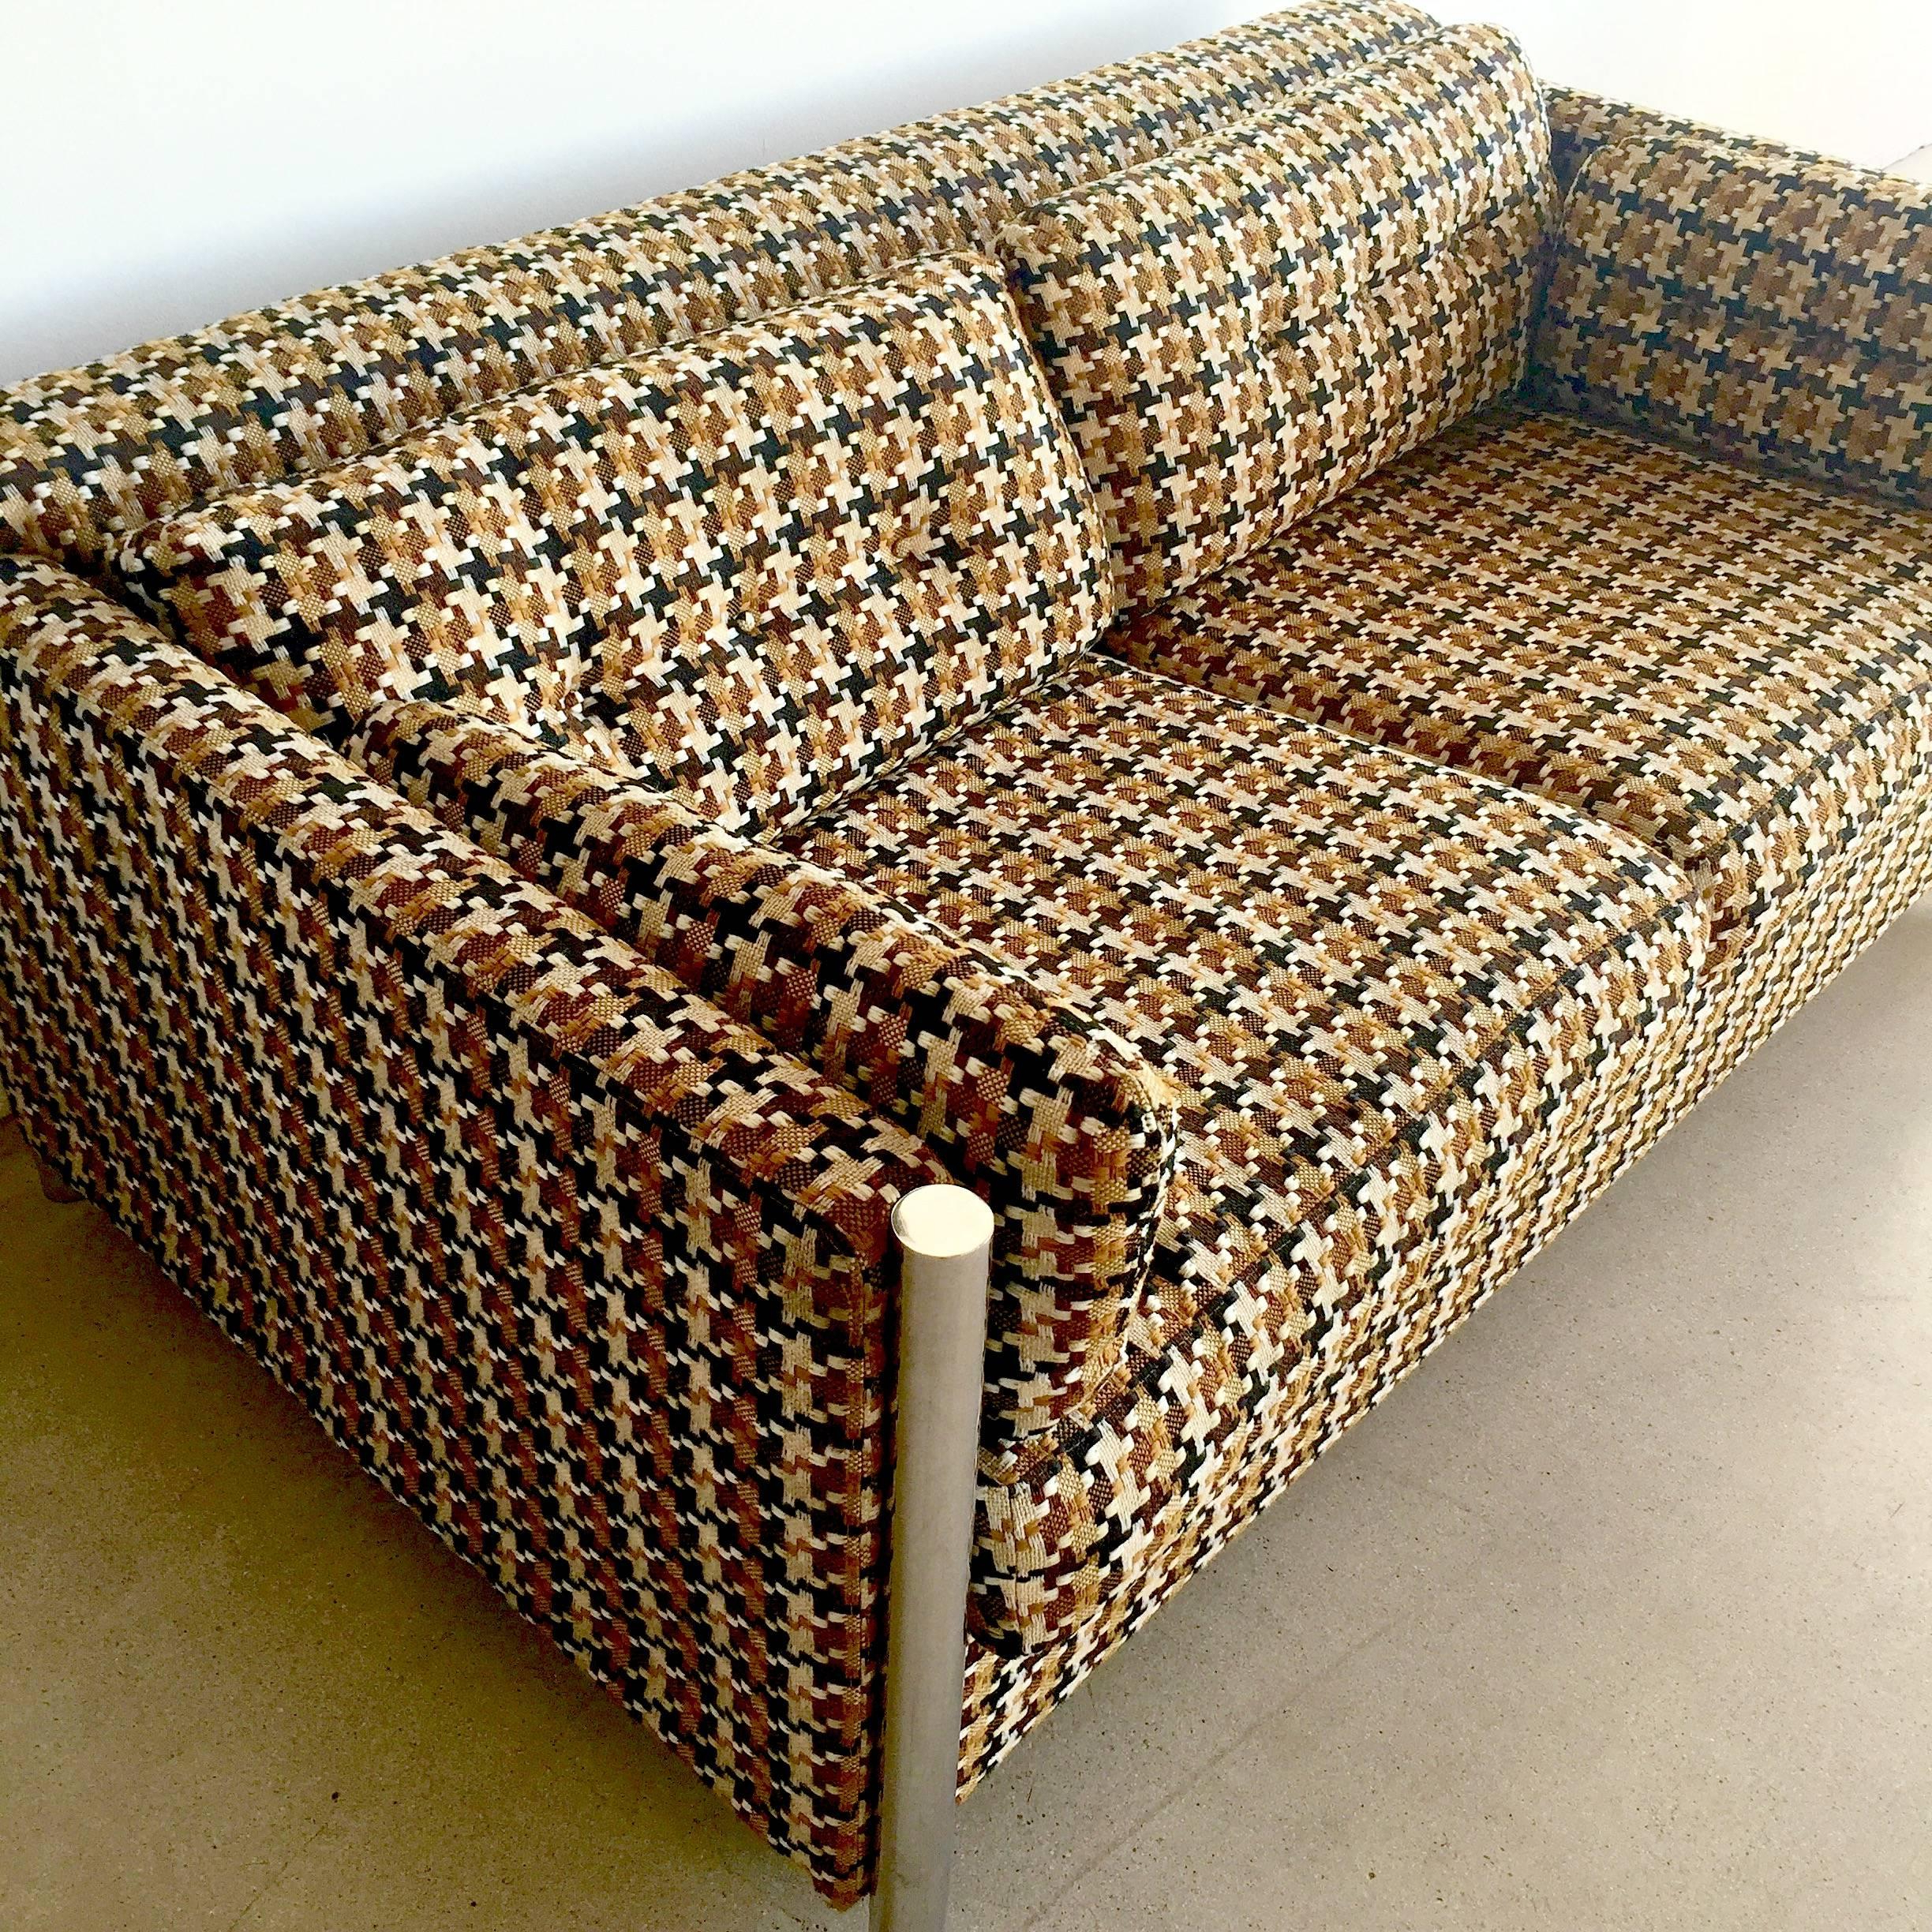 Selig Showcase Mid Century Modern Sofa Bed At 1Stdibs Throughout Latest Ducar Cocktail Tables (Gallery 18 of 20)